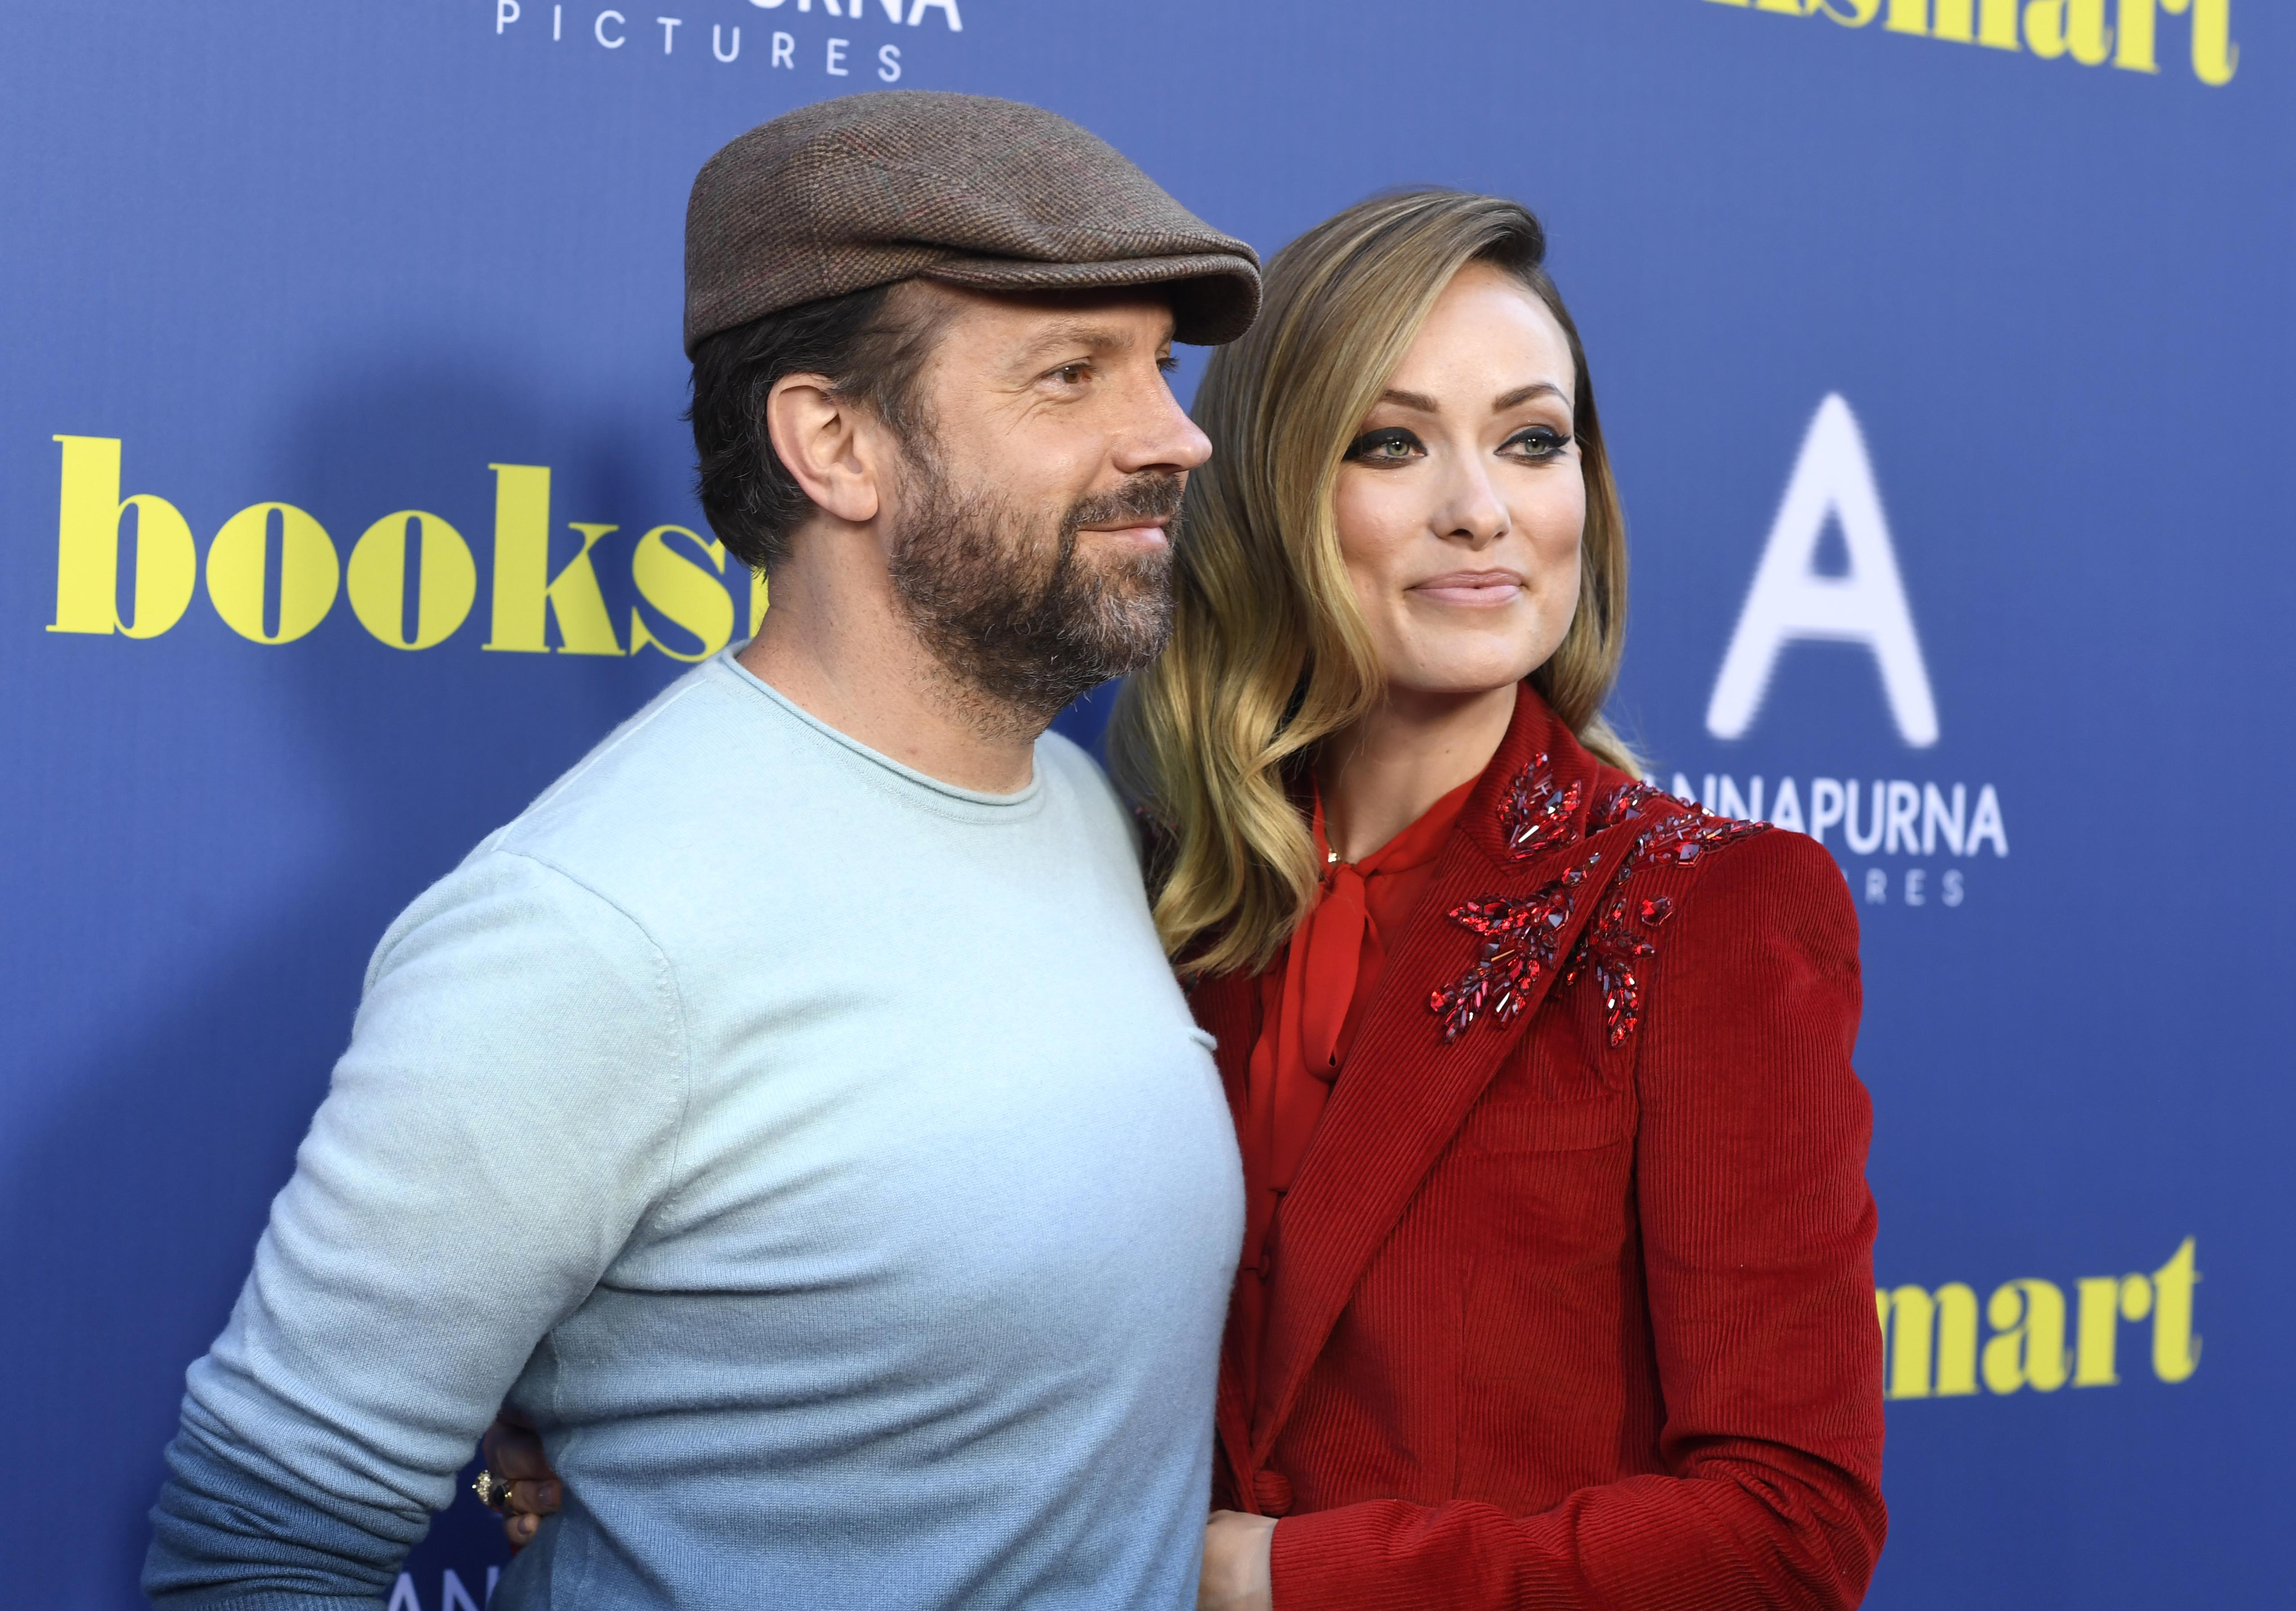 """Olivia Wilde and Jason Sudeikis at the screening of """"Booksmart"""", which Wilde directed,  in Los Angeles on May 13, 2019. 